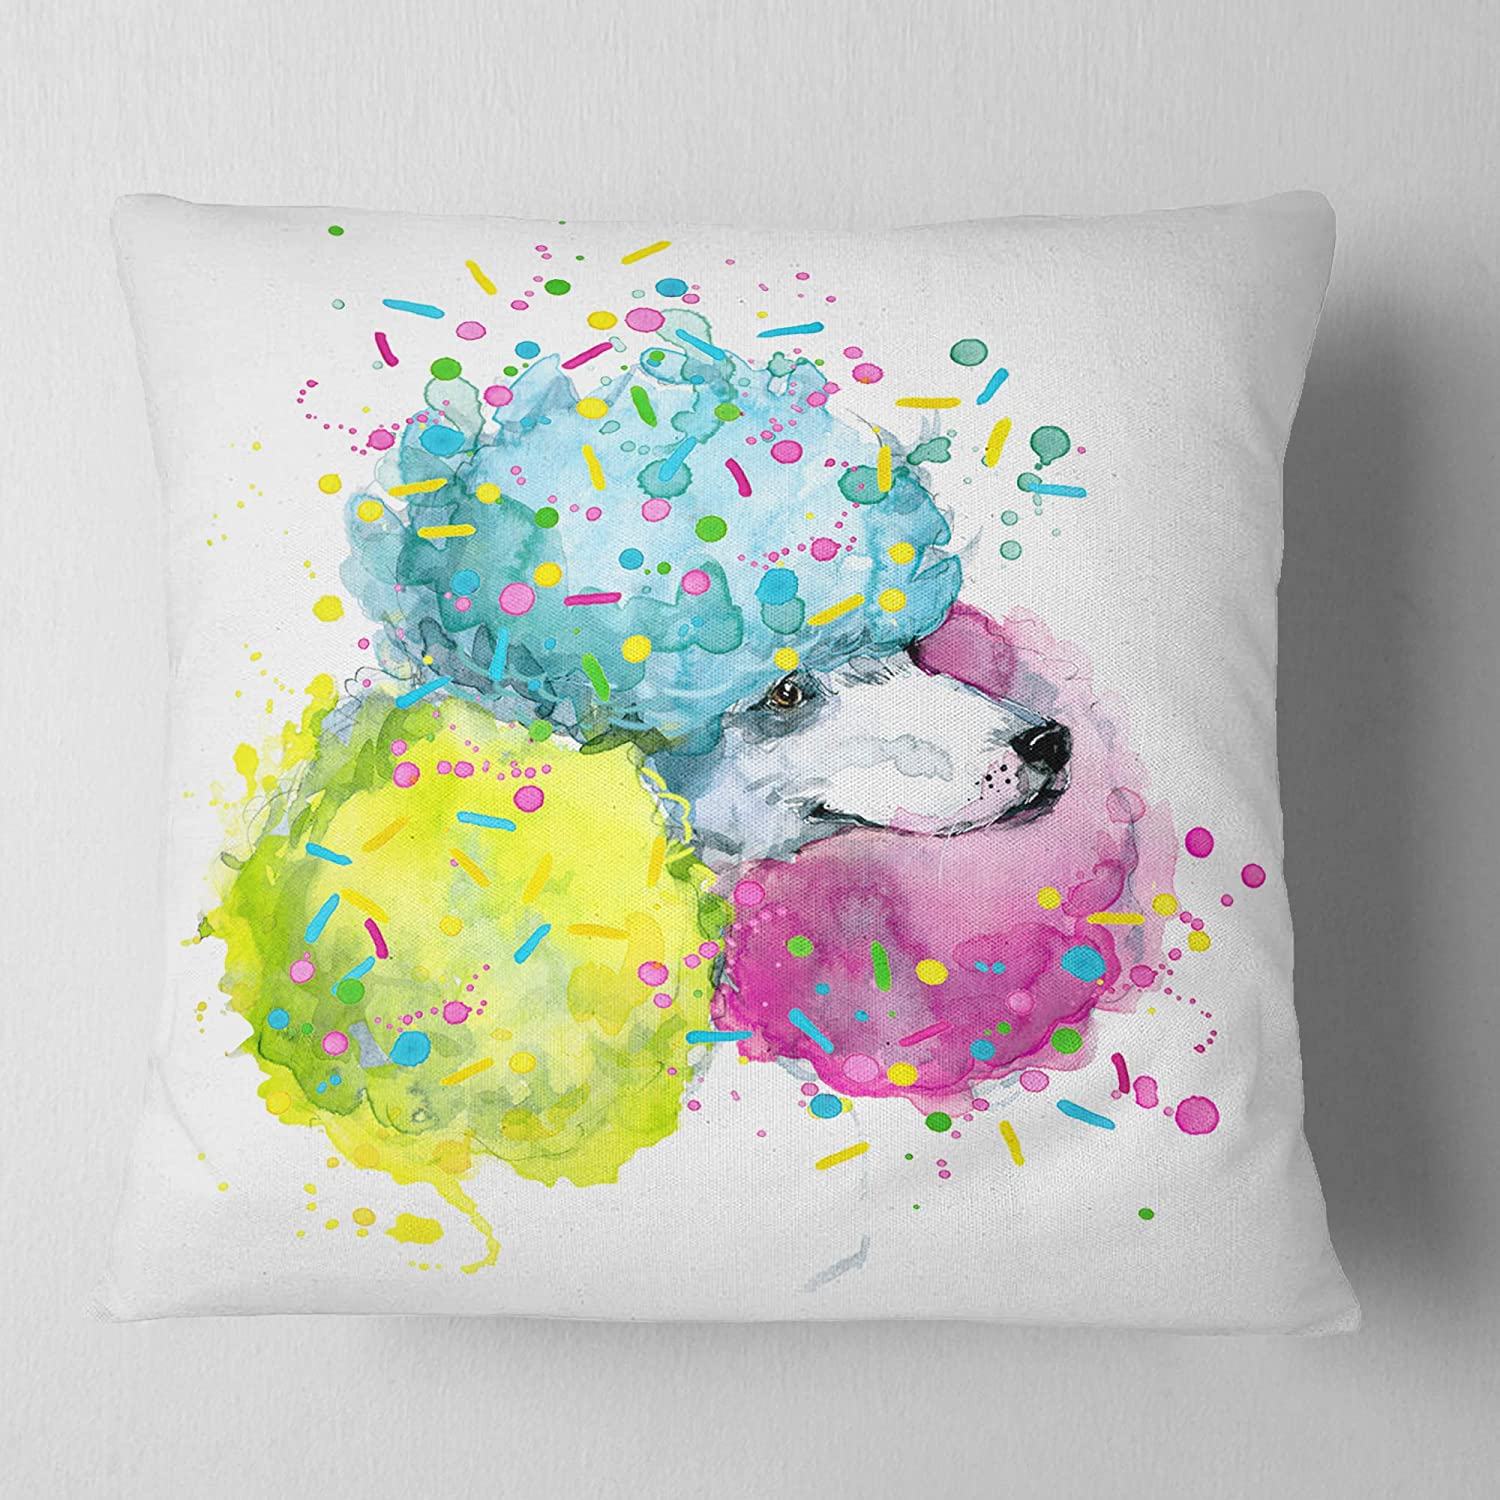 26 in Pillow Insert Designart CU13242-26-26 Cute White Dog with Color Spheres Contemporary Animal Throw Cushion Pillow Cover for Living Room Sofa Cushion Cover Printed on Both Side x 26 in